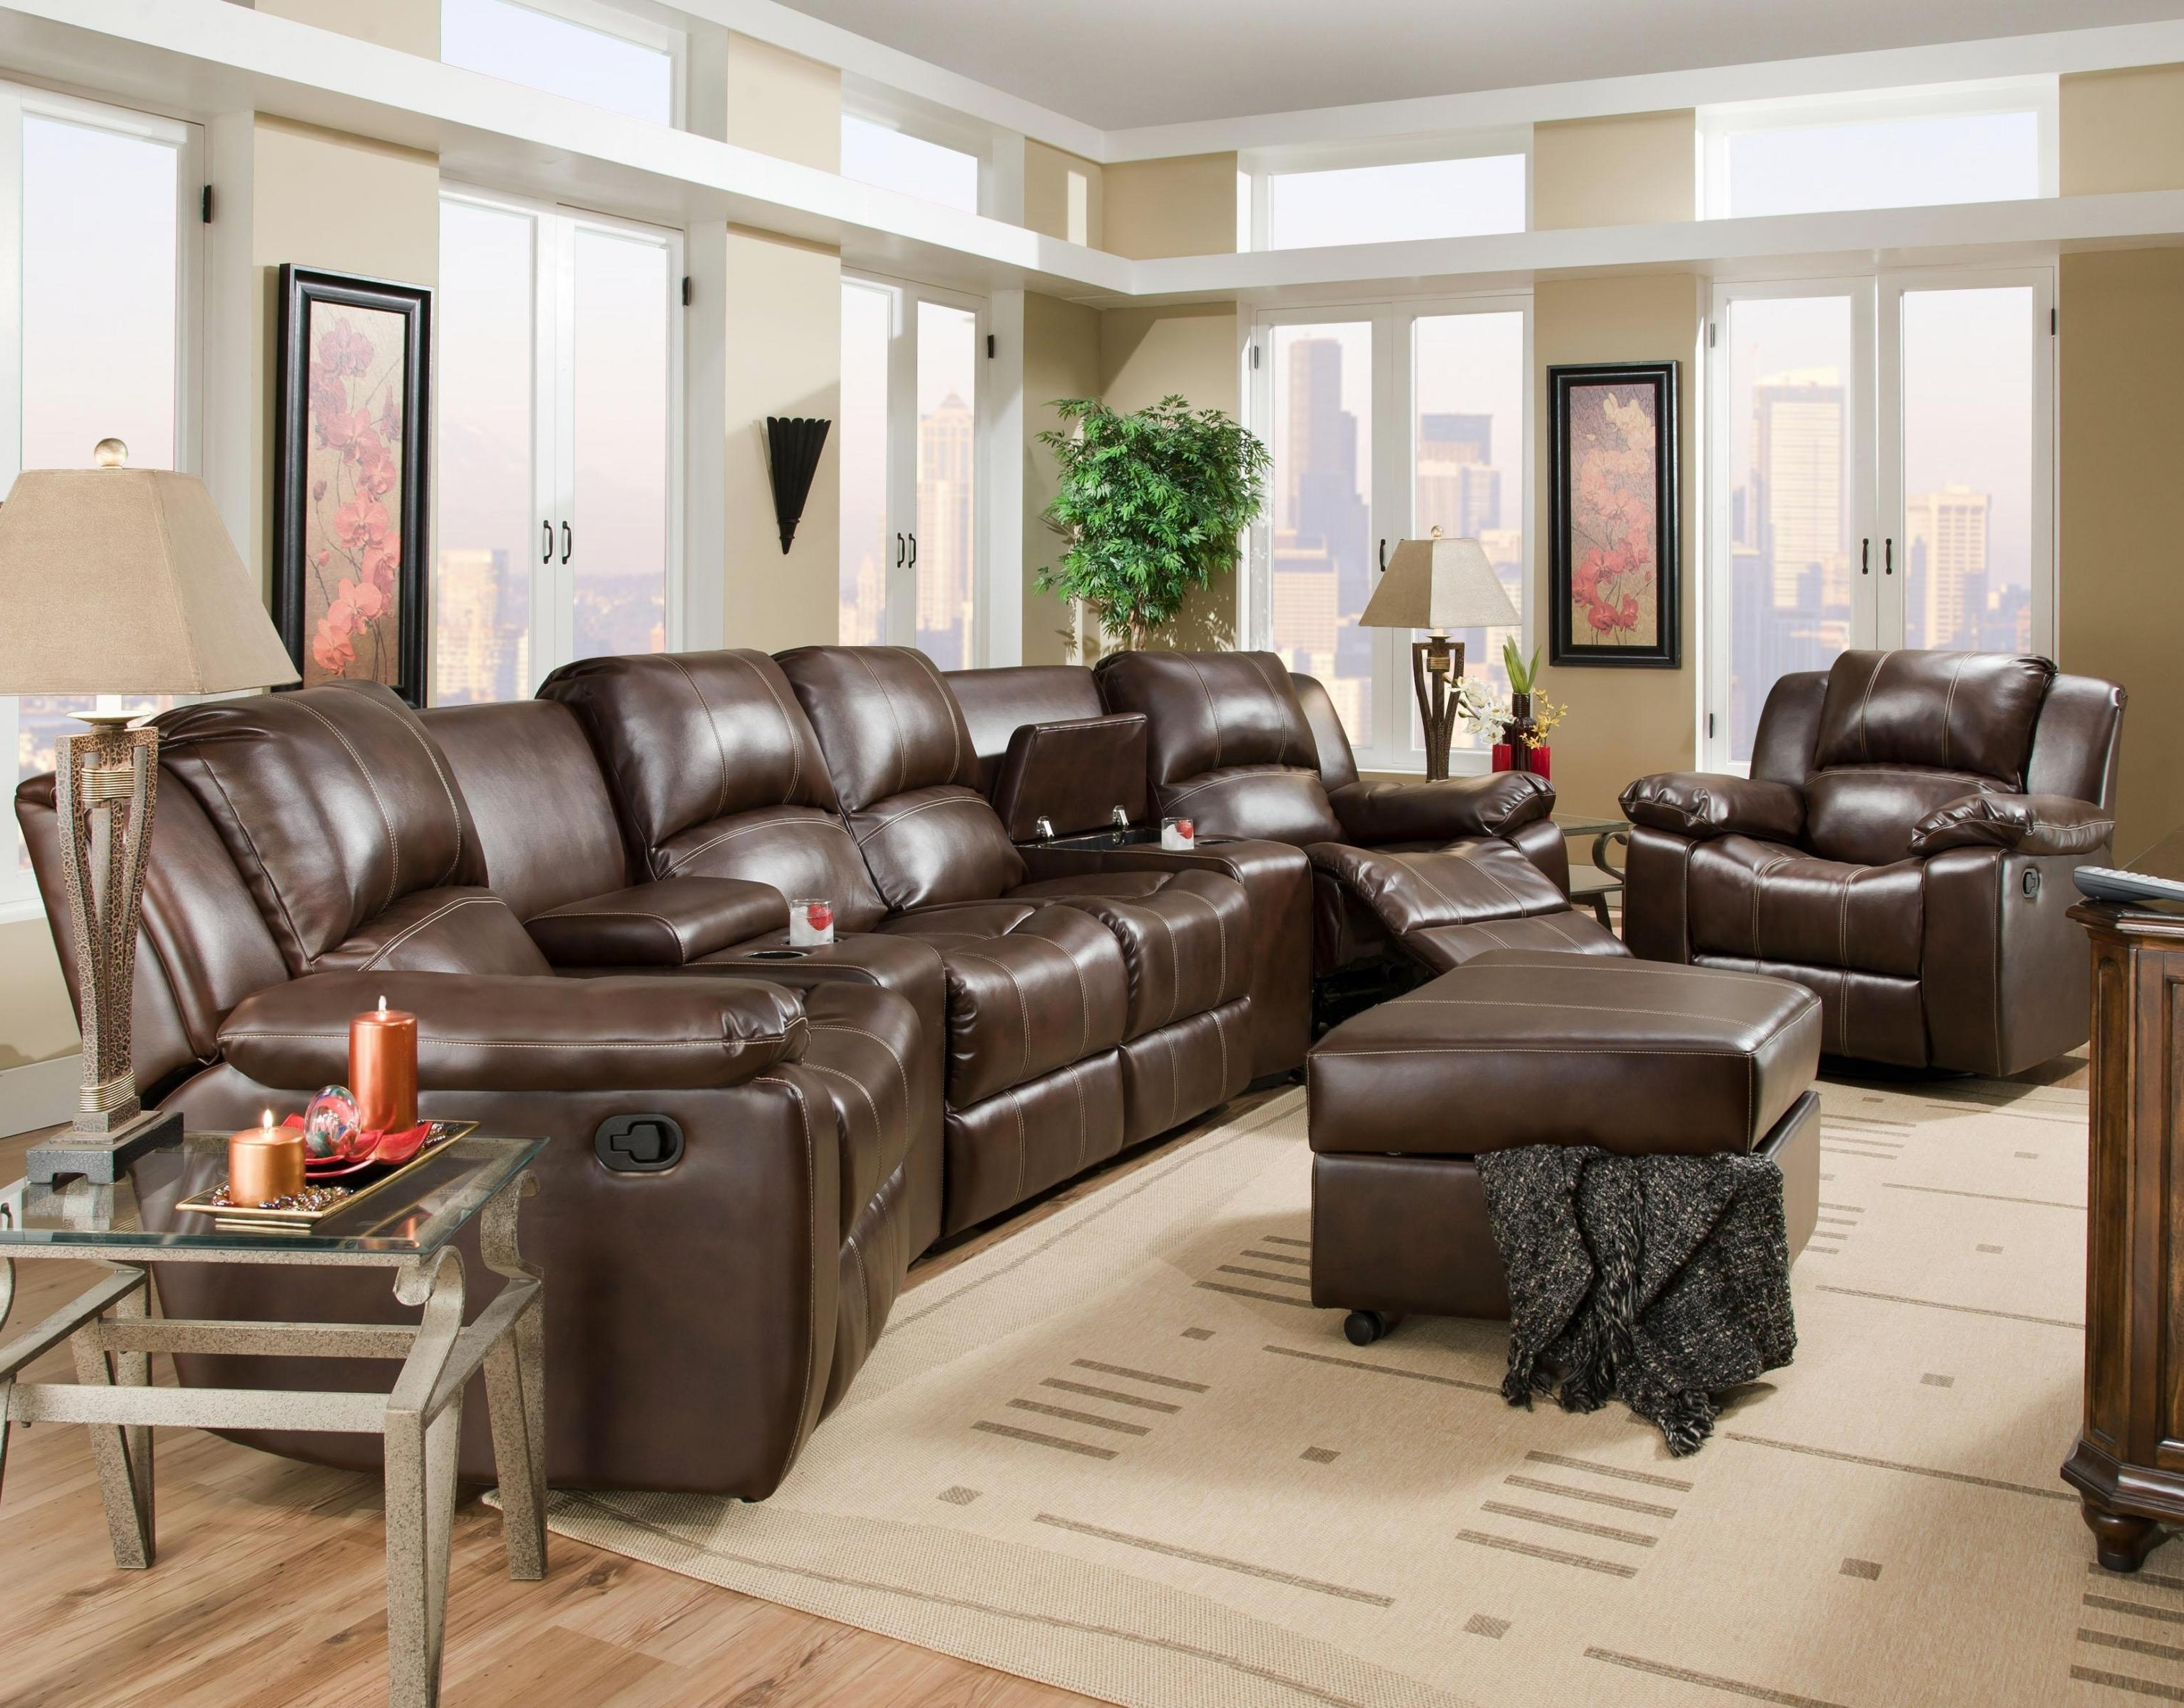 Belfort Furniture Reviews Reclining Sectional Sofas Washington Dc Intended For Most Popular Virginia Sectional Sofas (View 1 of 15)